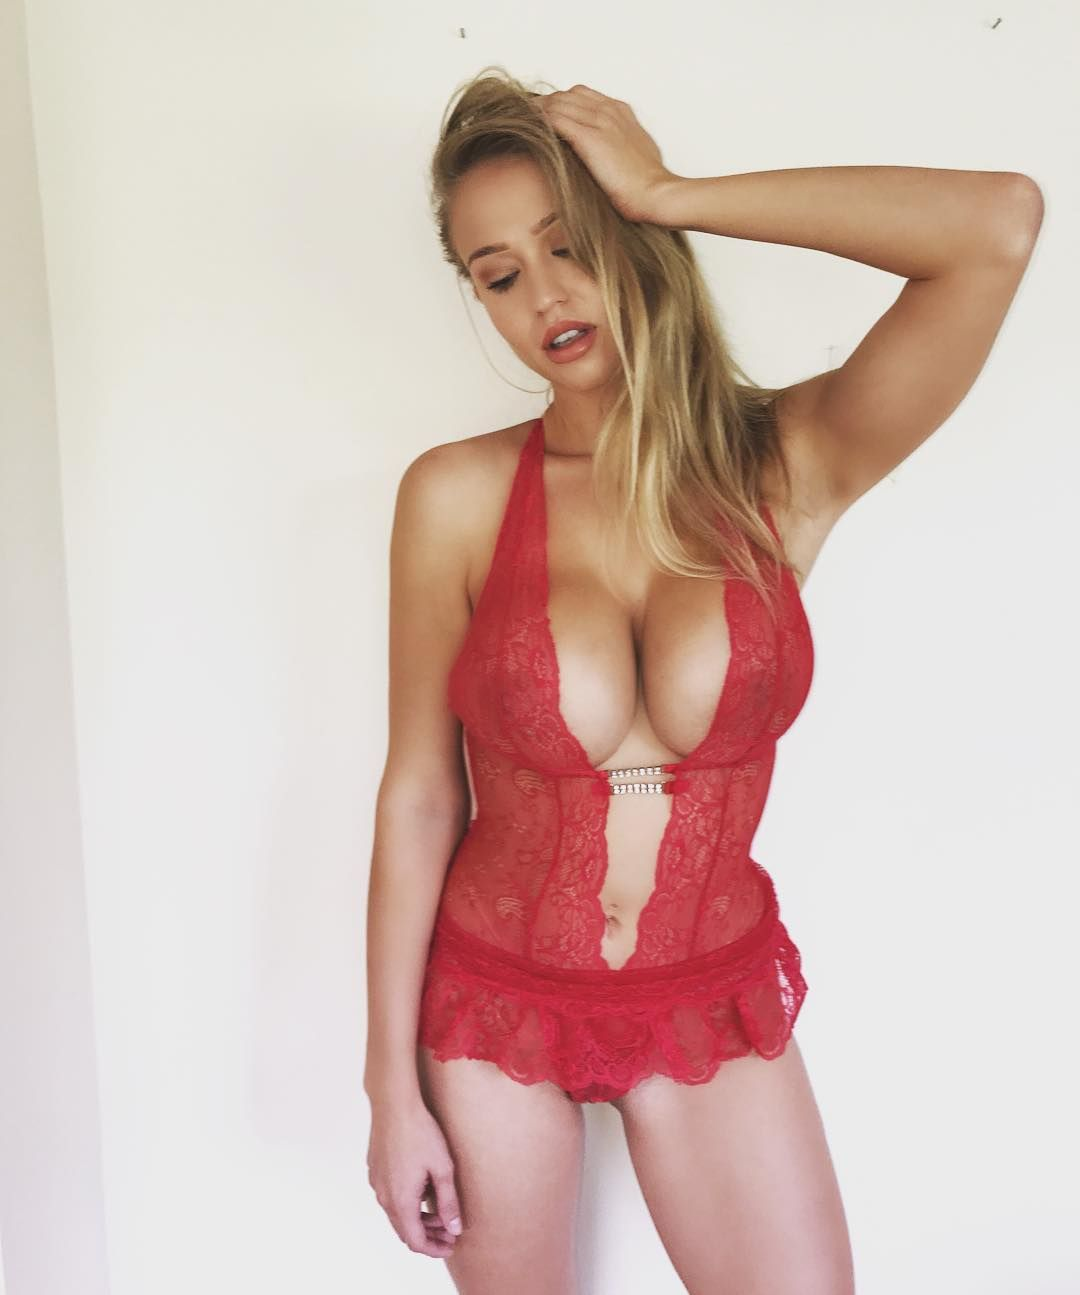 Pussy Instagram Sophie Reade naked photo 2017